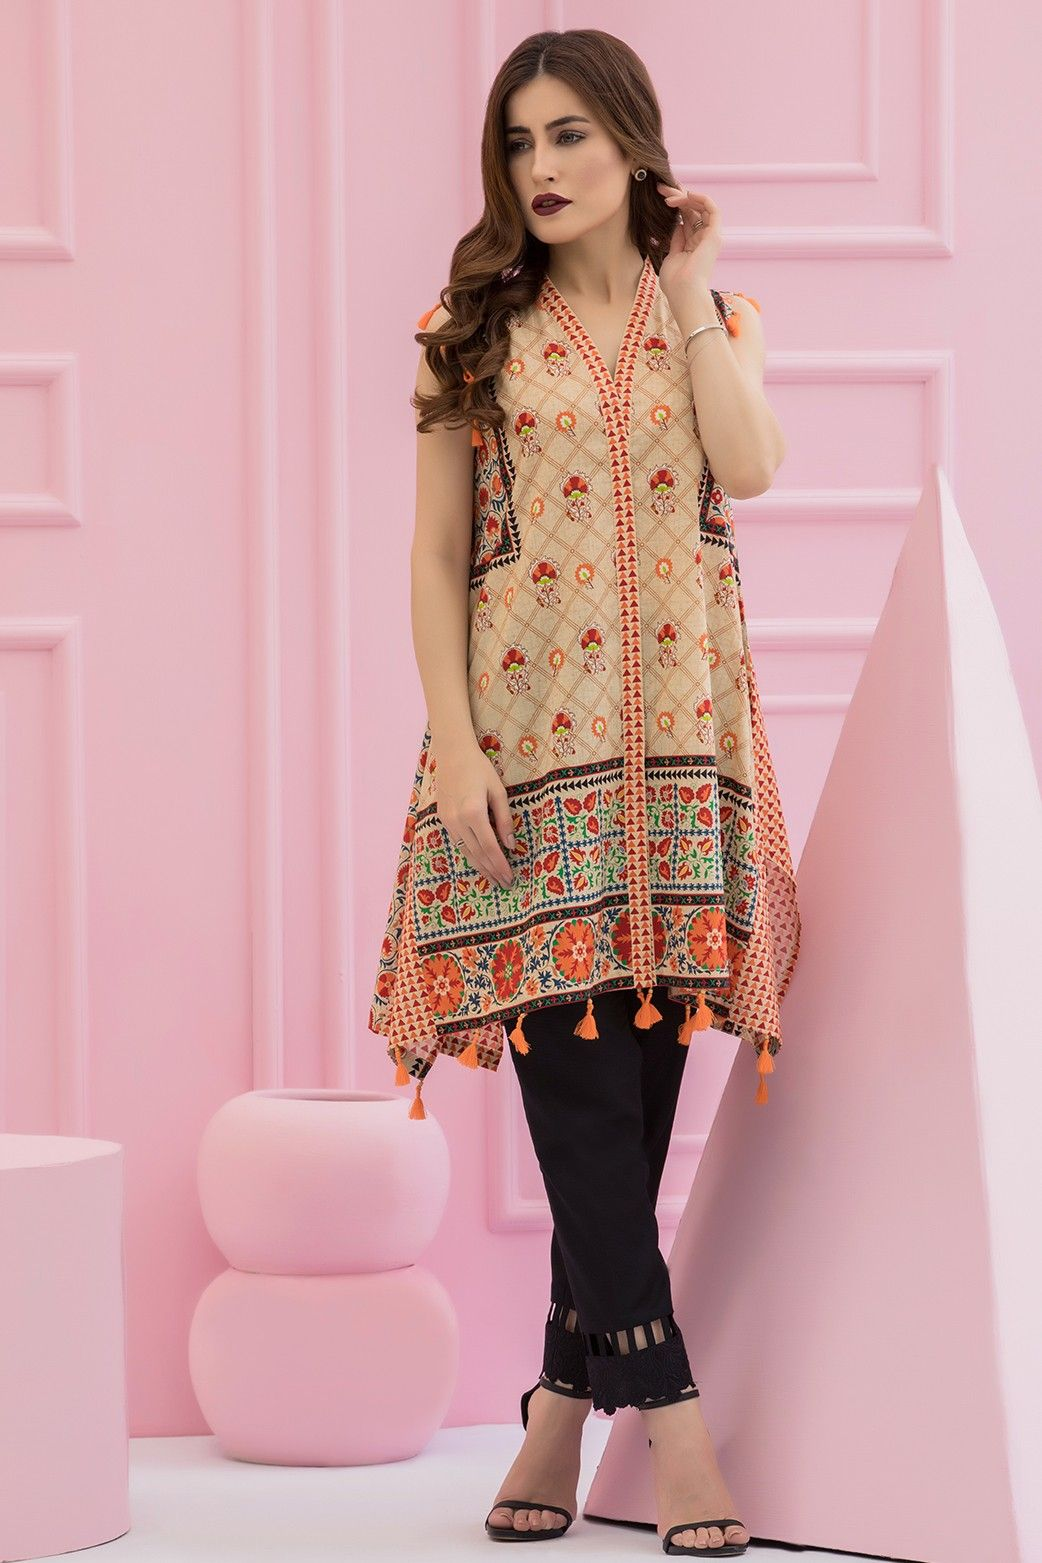 f16e10e494 Unstitched Pakistani Cambric Dress On Online Sale Buy Online By Zeen  Cambridge Winter Collection 2017 In